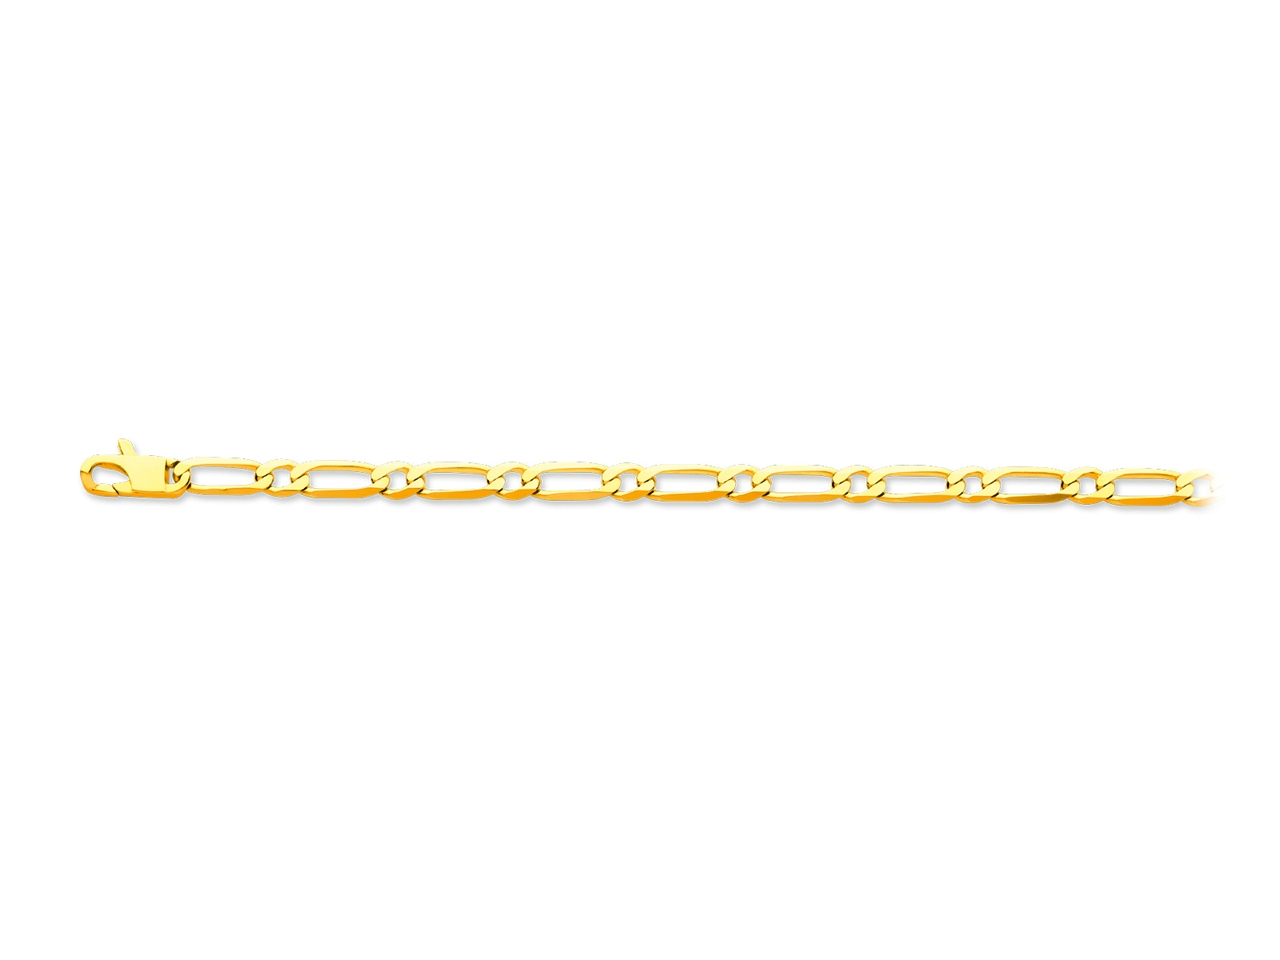 Collier maille alternée 1/1 ultra plate, Or jaune 18k, 4,9 mm, 55 cm